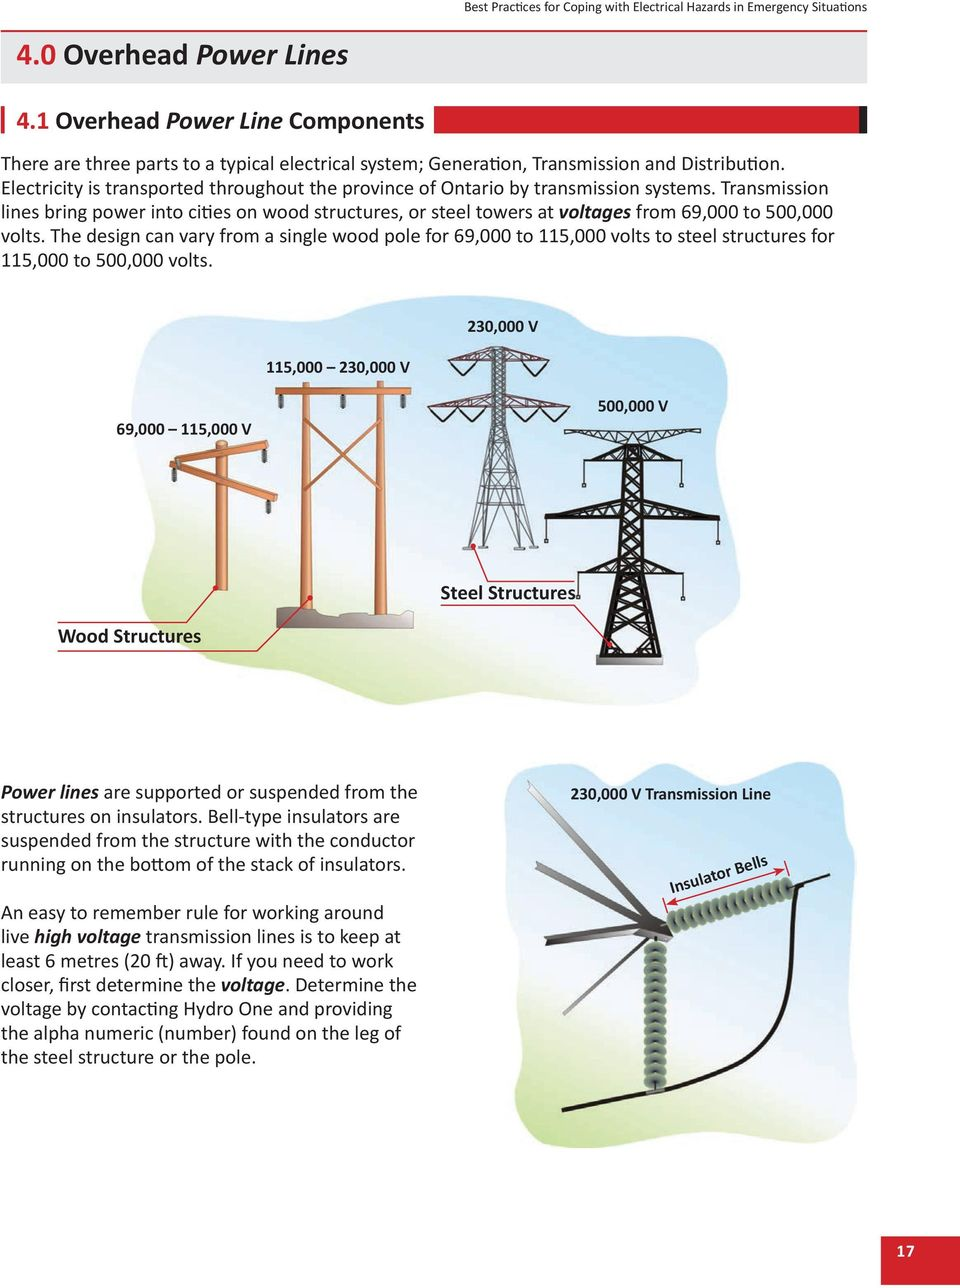 Electrical Safety Handbook For Emergency Responders Pdf High Leg Delta Wiring Diagram Electricity Is Transported Throughout The Province Of Ontario By Transmission Systems